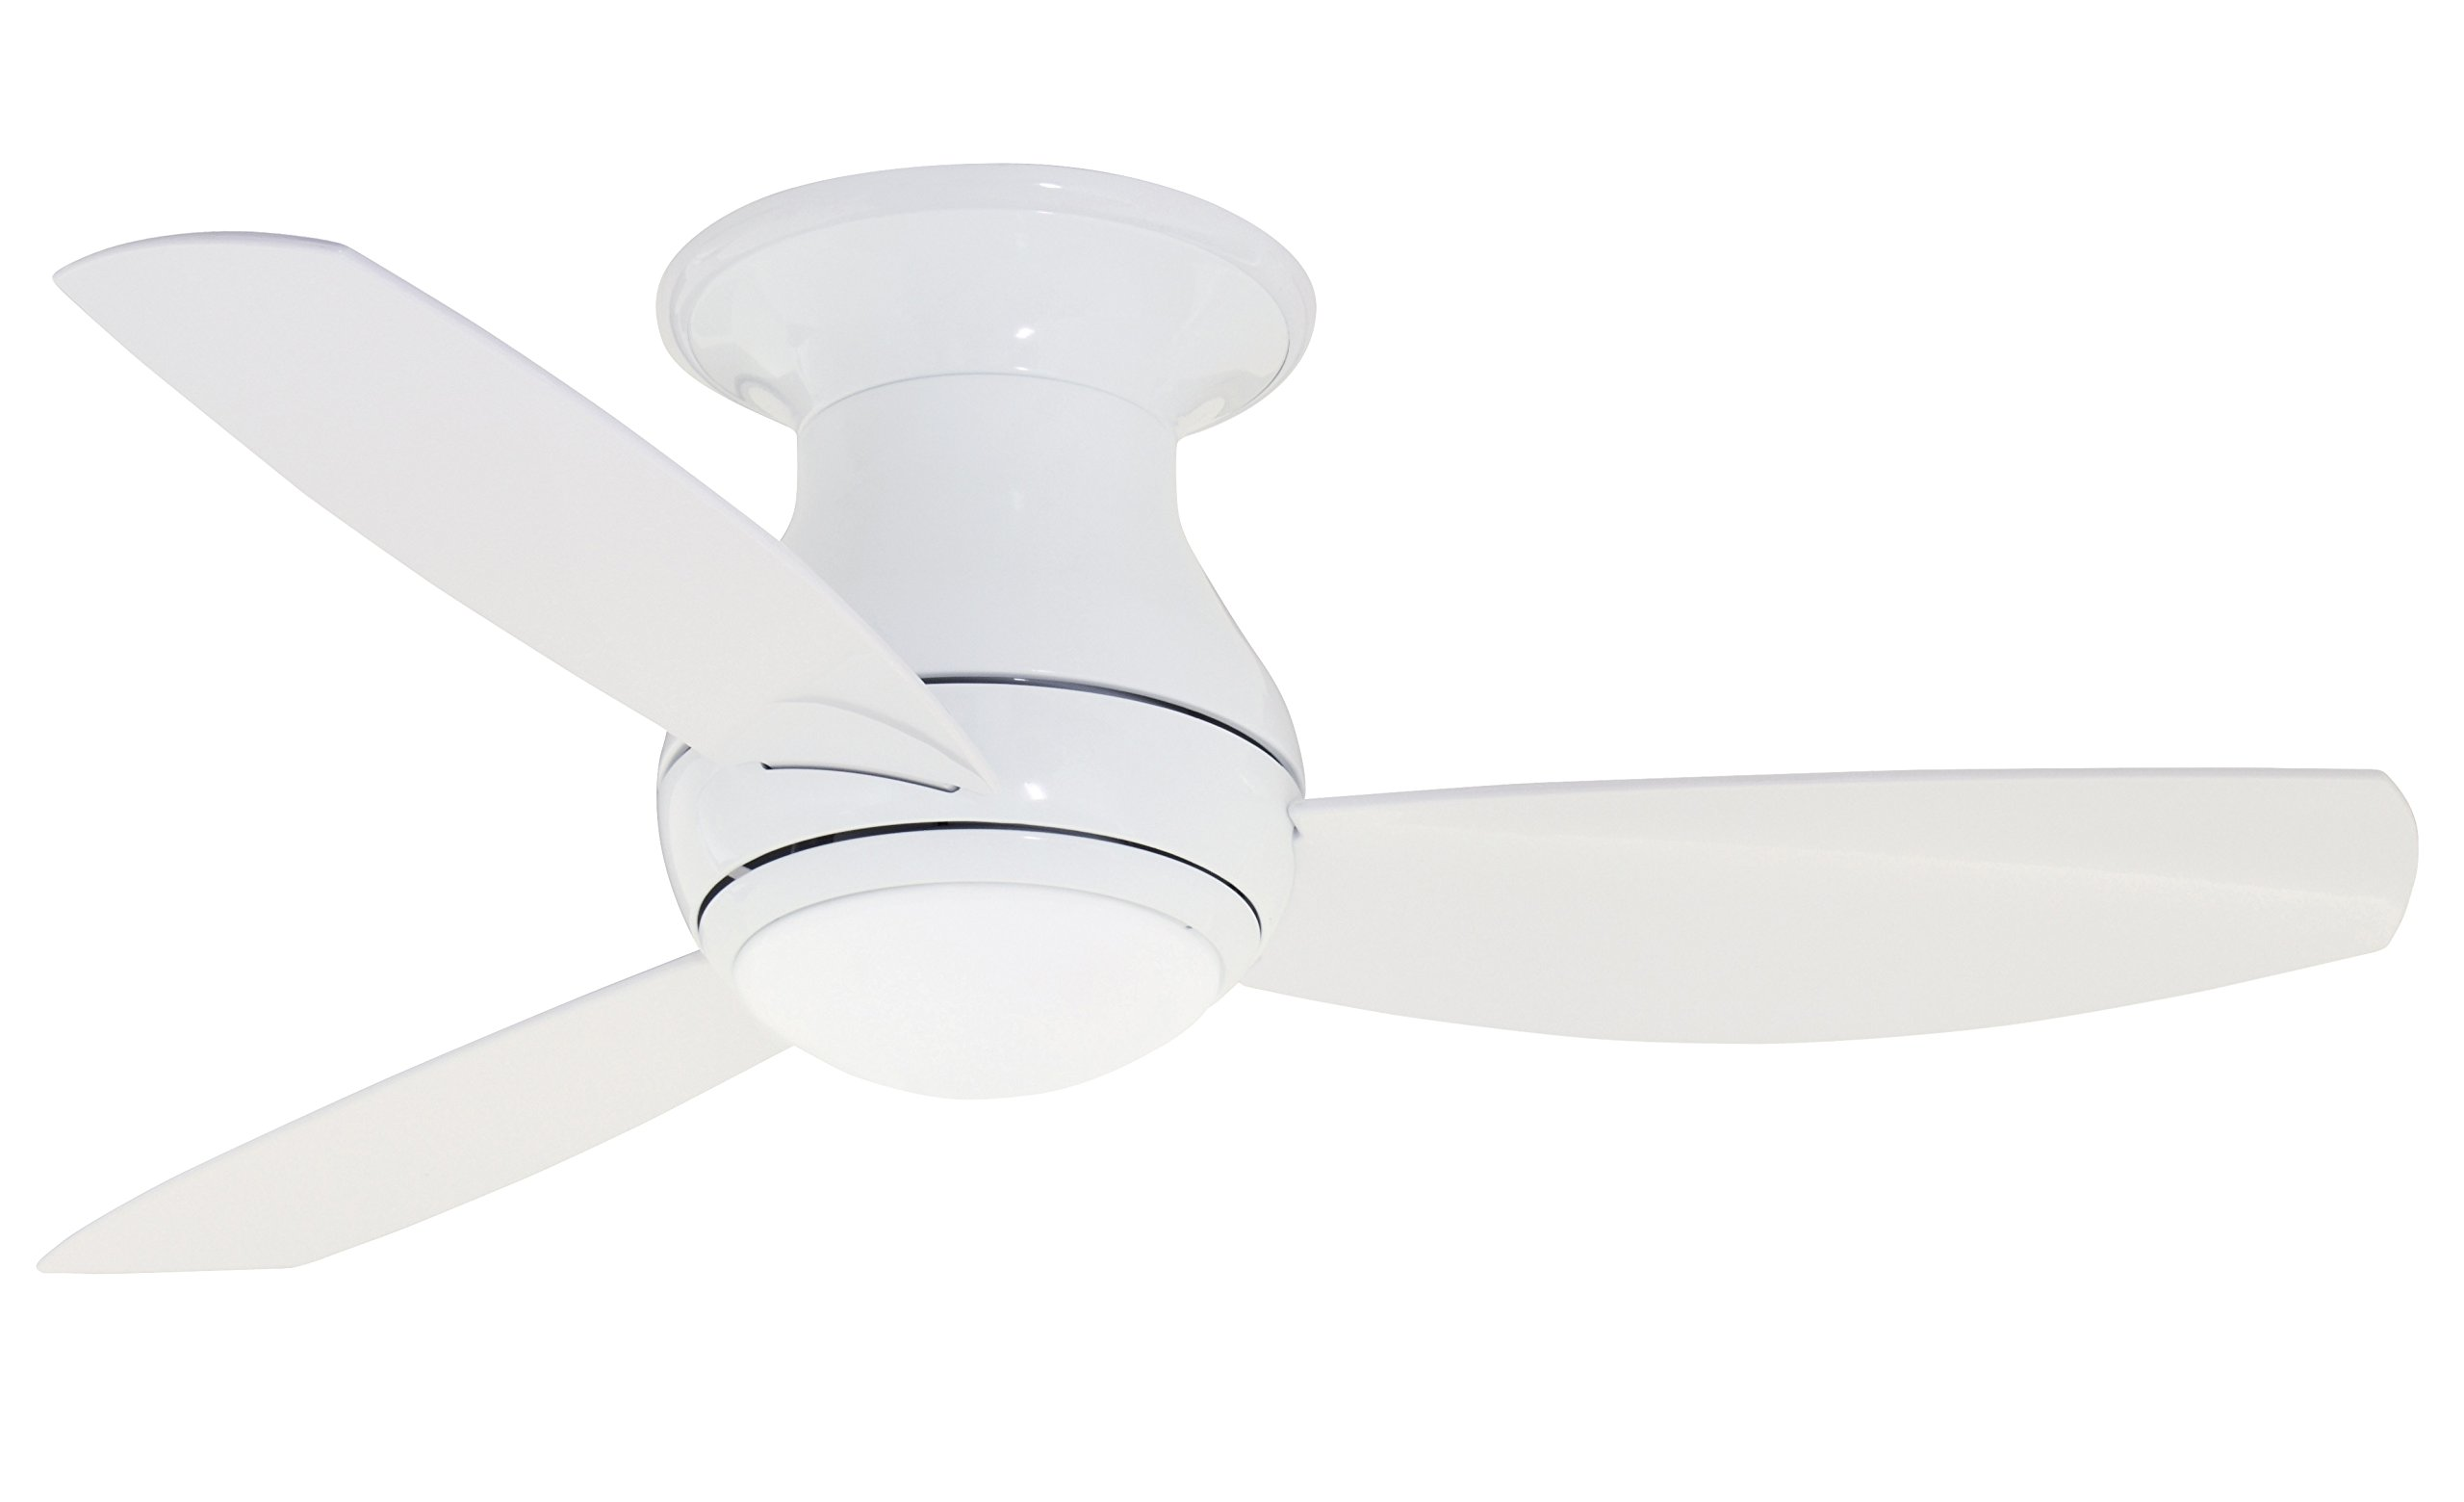 Emerson, CF144LWW Curva Sky 44-inch Indoor/Outdoor Ceiling Fan, 3-Blade Ceiling Fan with LED Lighting and 6-Speed Remote Control